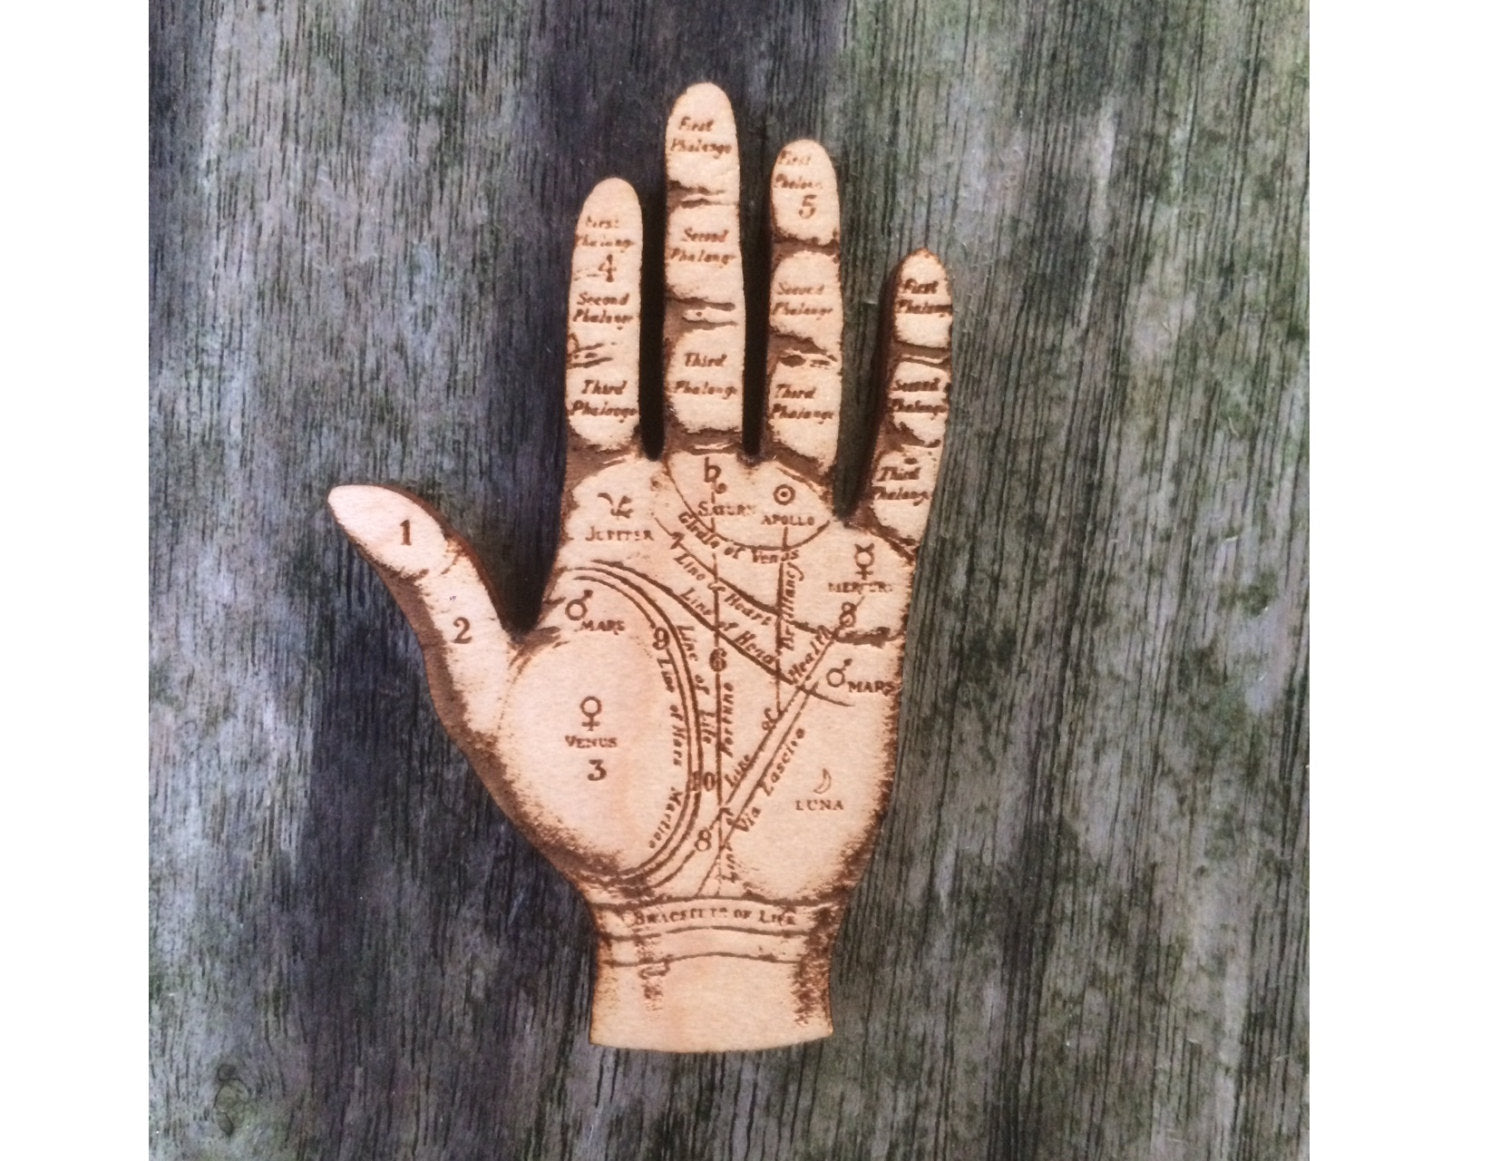 Palmistry Hand - Anatomical Jewellery - Wooden Brooch - ByCandlelight27